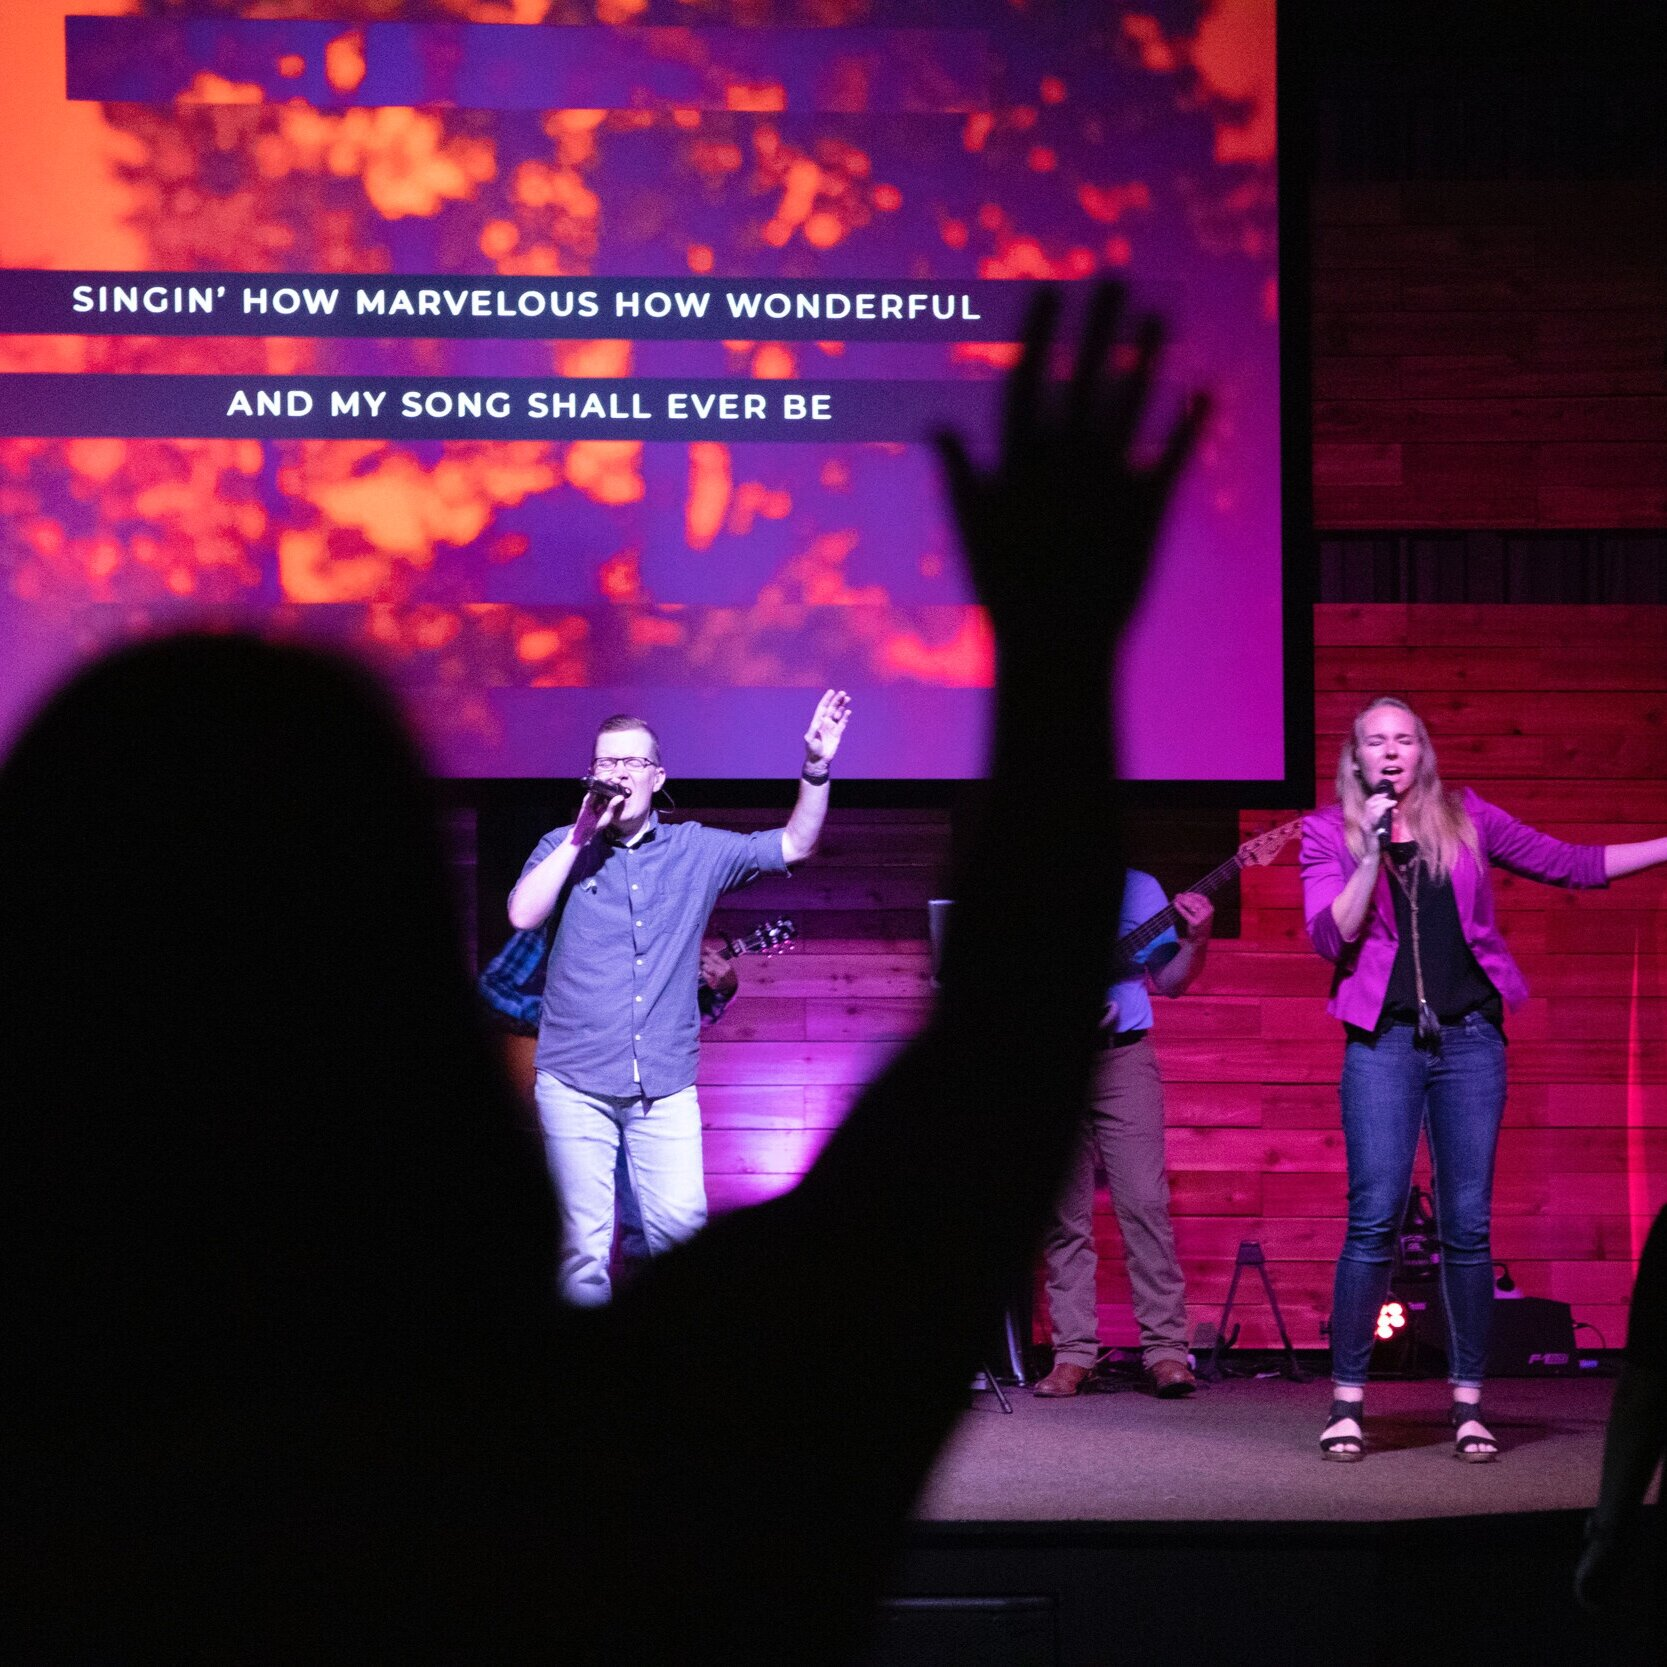 Worship Team - This team blazes a pathway for our guests to encounter the Living God. Vocally or instrumentally, the Worship Team allows everyone to use their gifts to serve God and others.